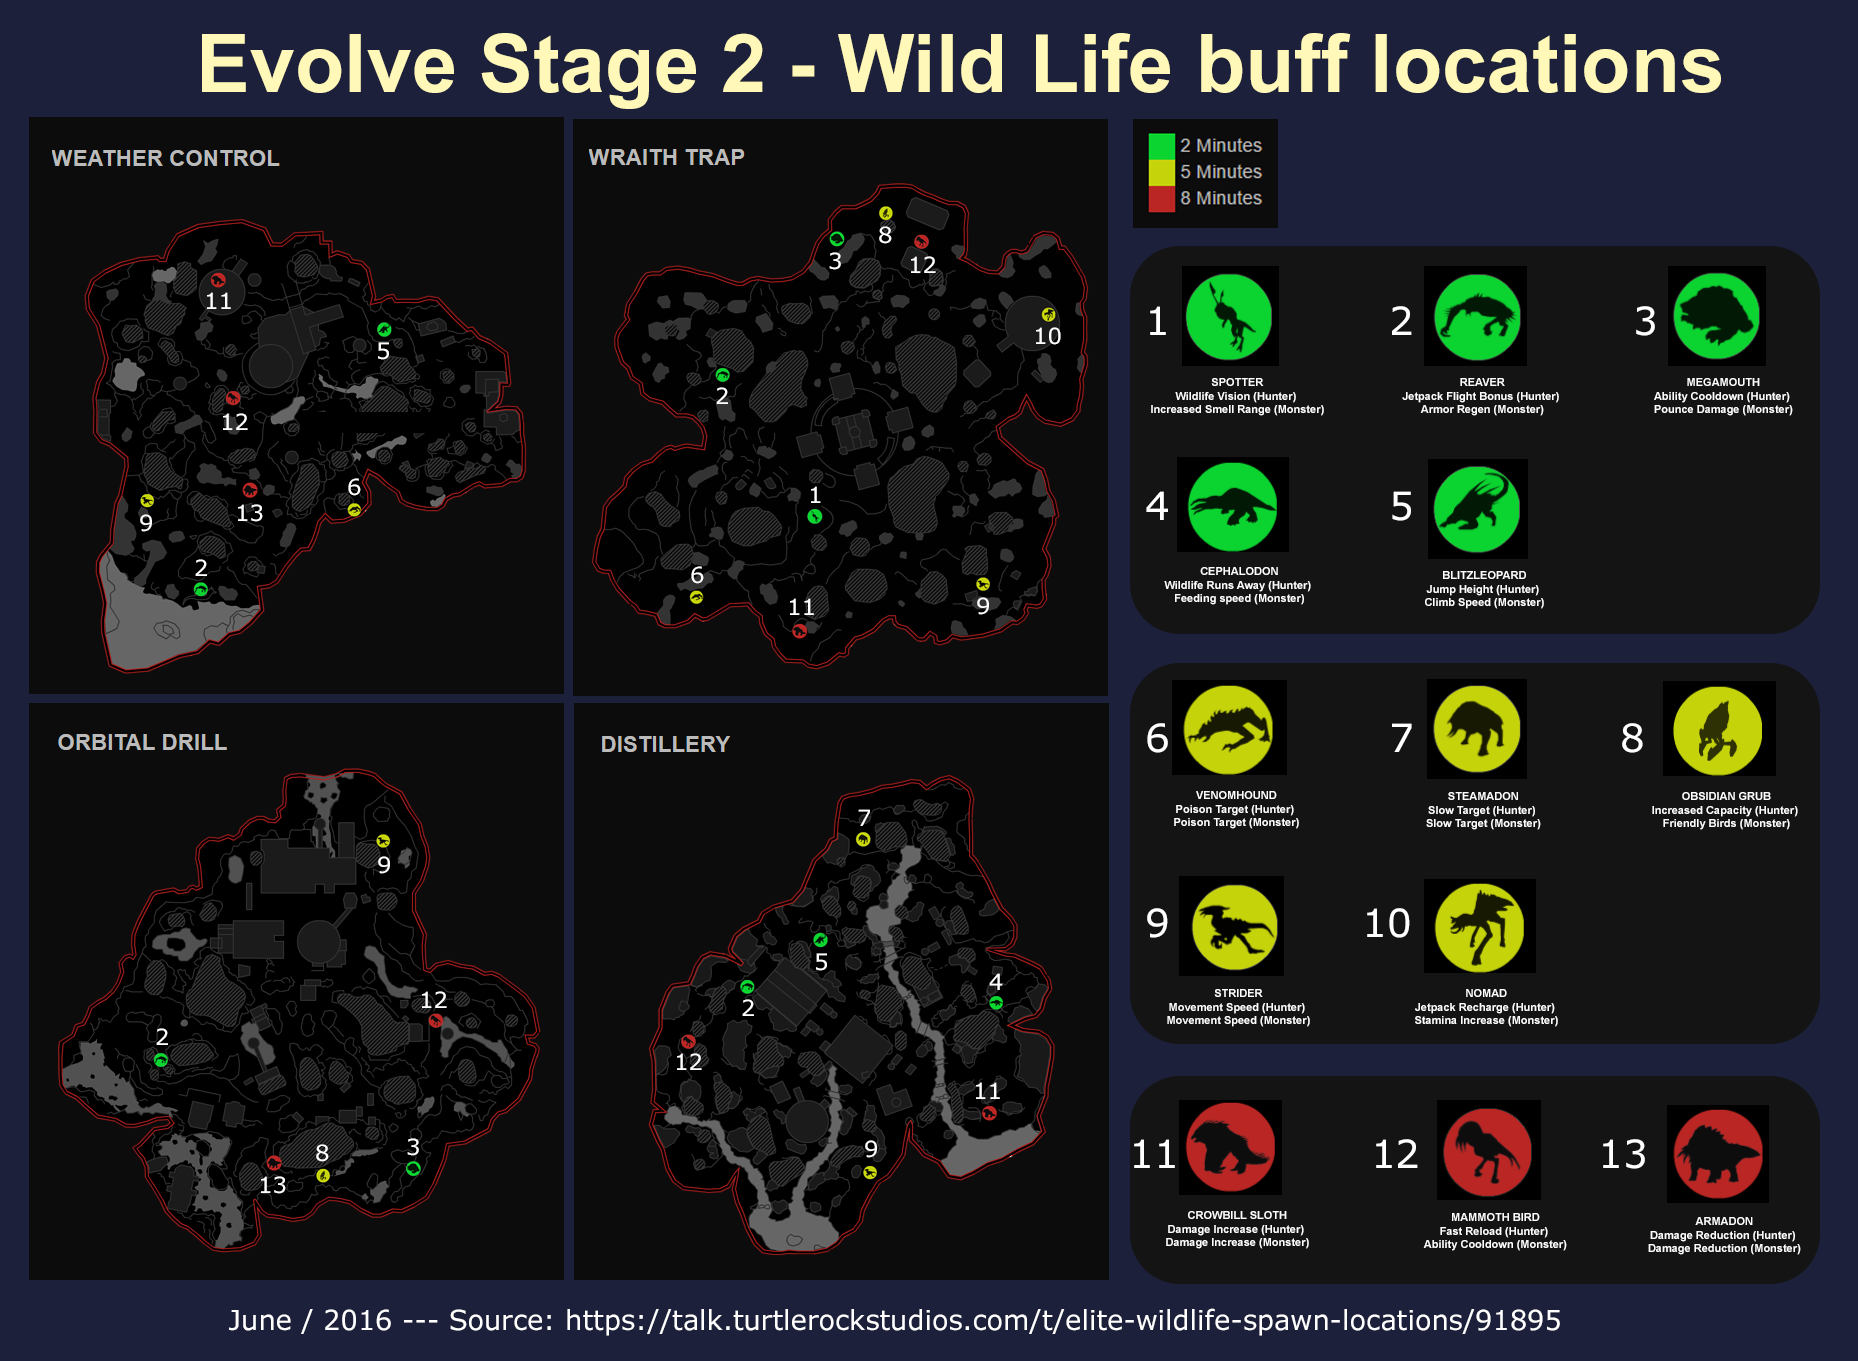 Wildlife Buff Locations.png